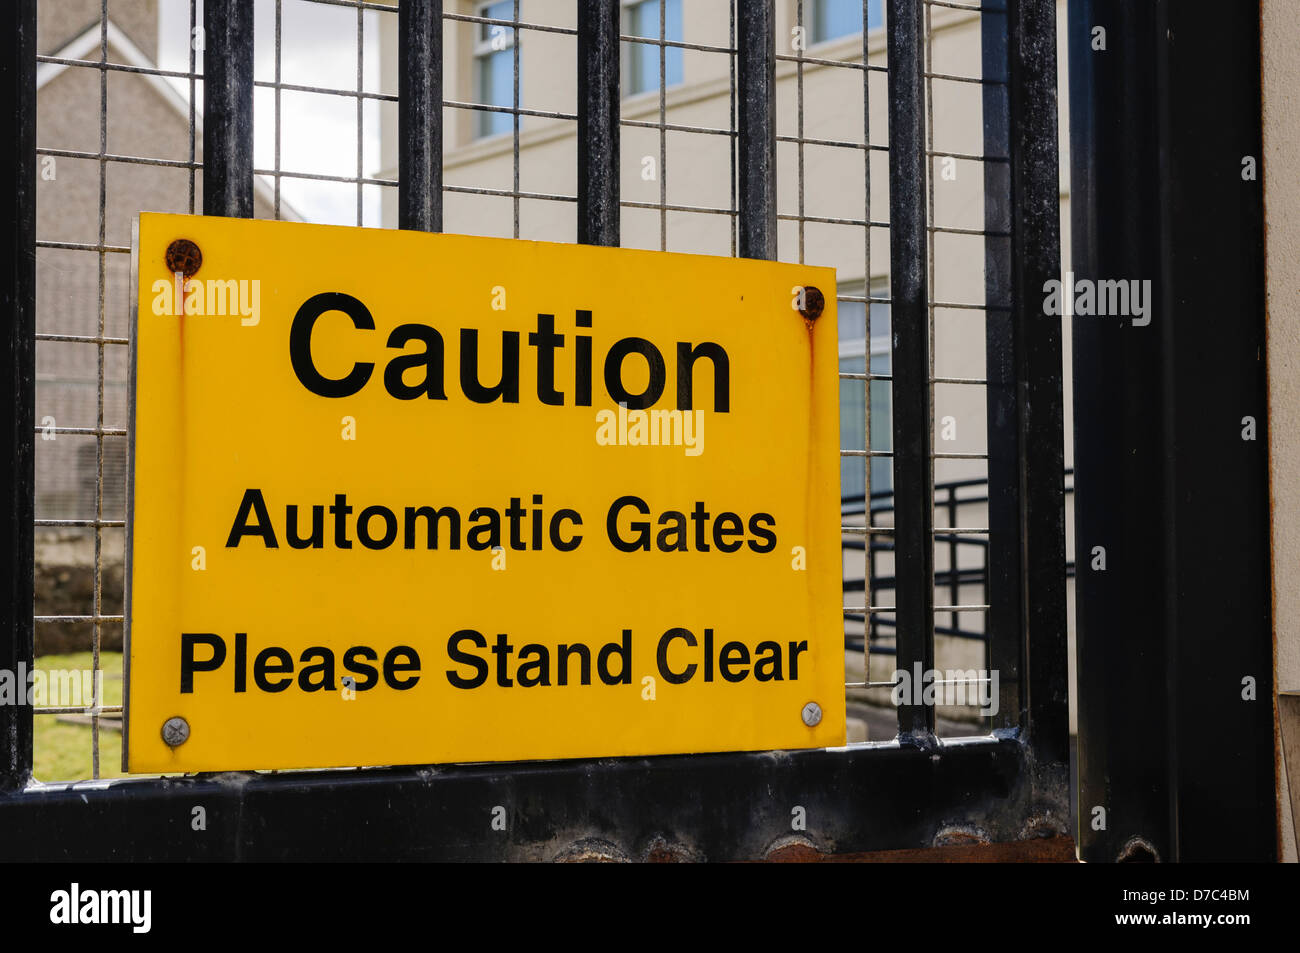 Sign at a heavily fortified PSNI police station 'Caution: automatic gates. Please stand clear' - Stock Image